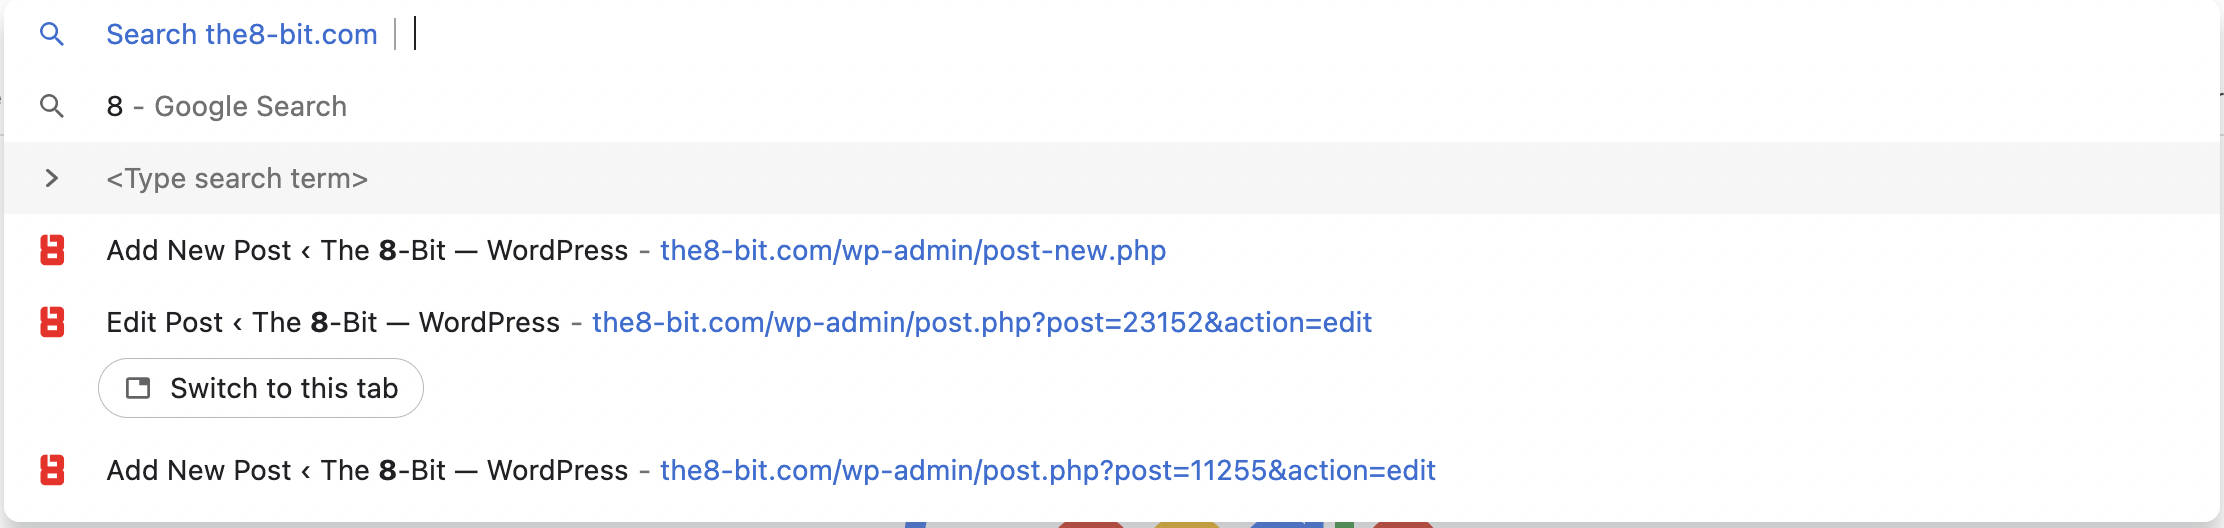 Demonstration of Chrome's direct website search.